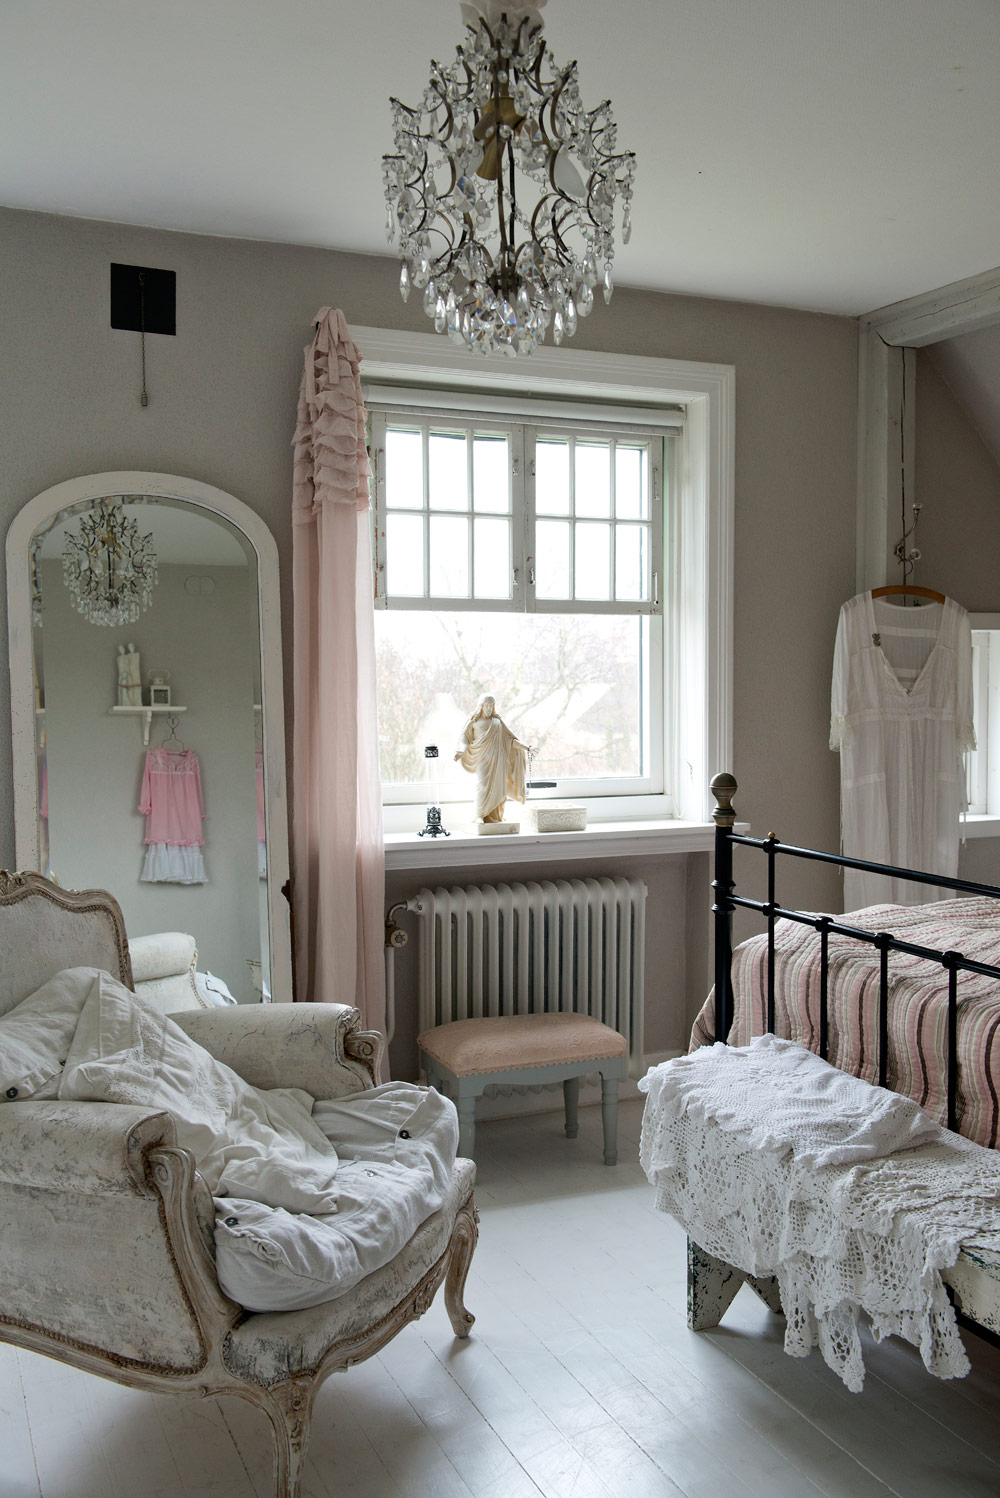 Gin design room shabby chic inspiration for Shabby chic bedroom designs